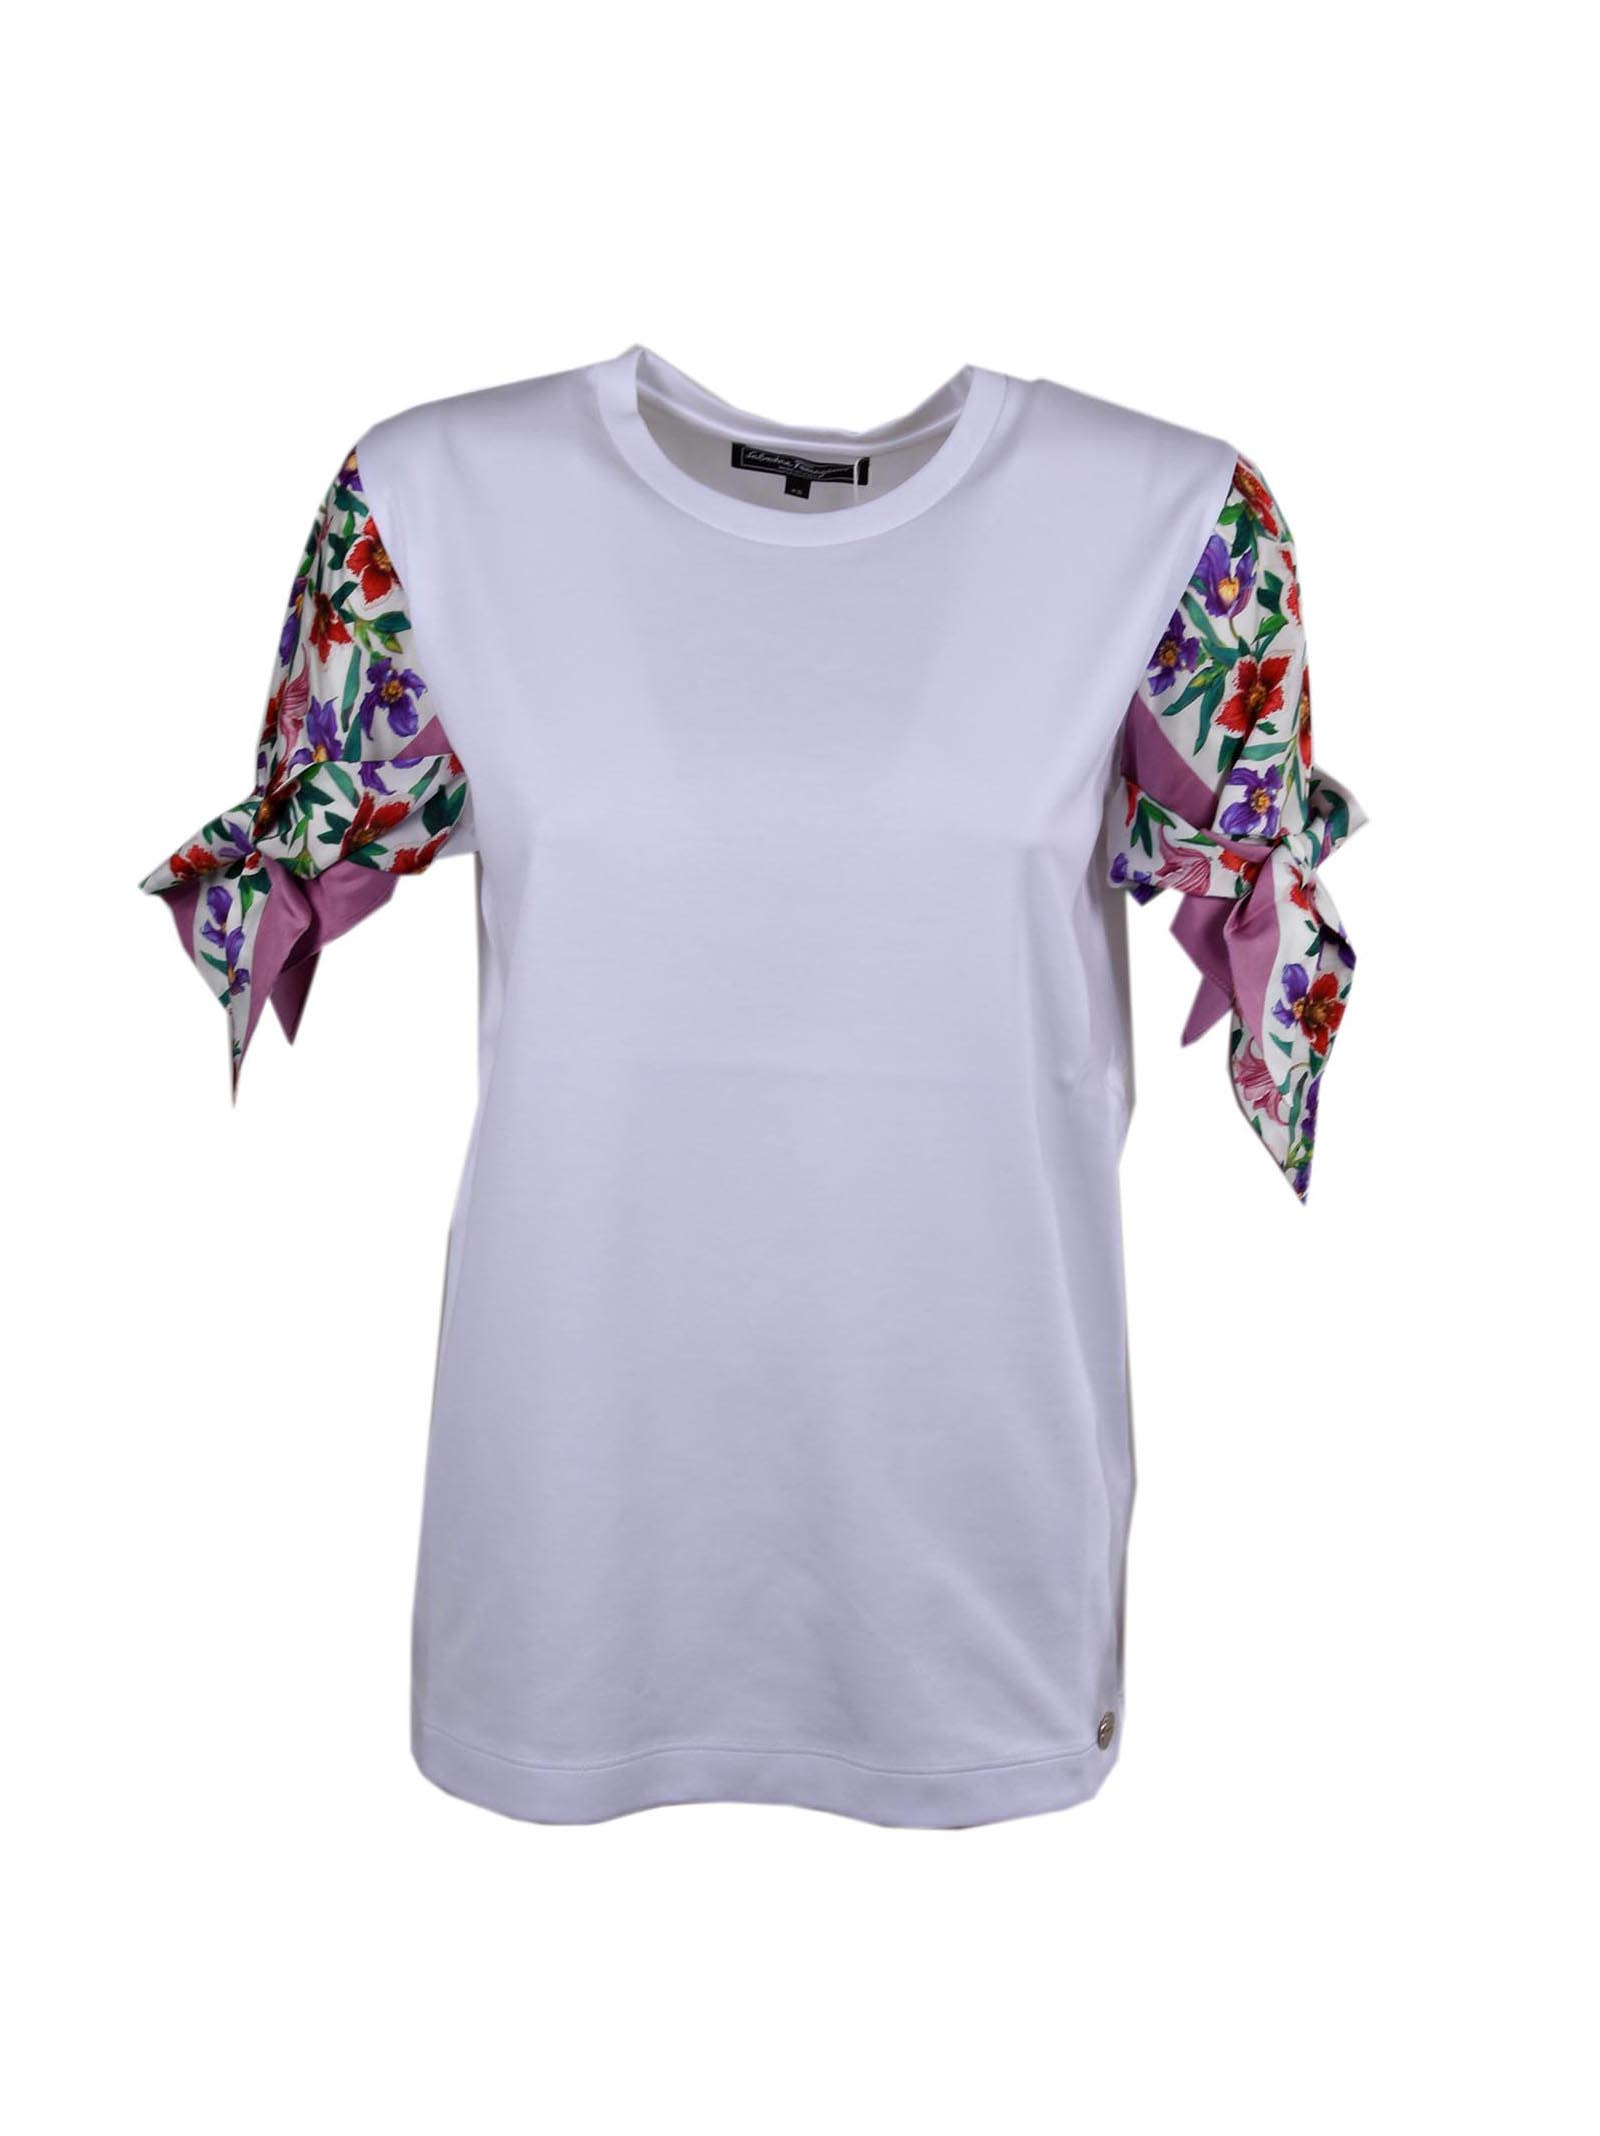 Salvatore Ferragamo T-shirt Sleeve Bouquet Print